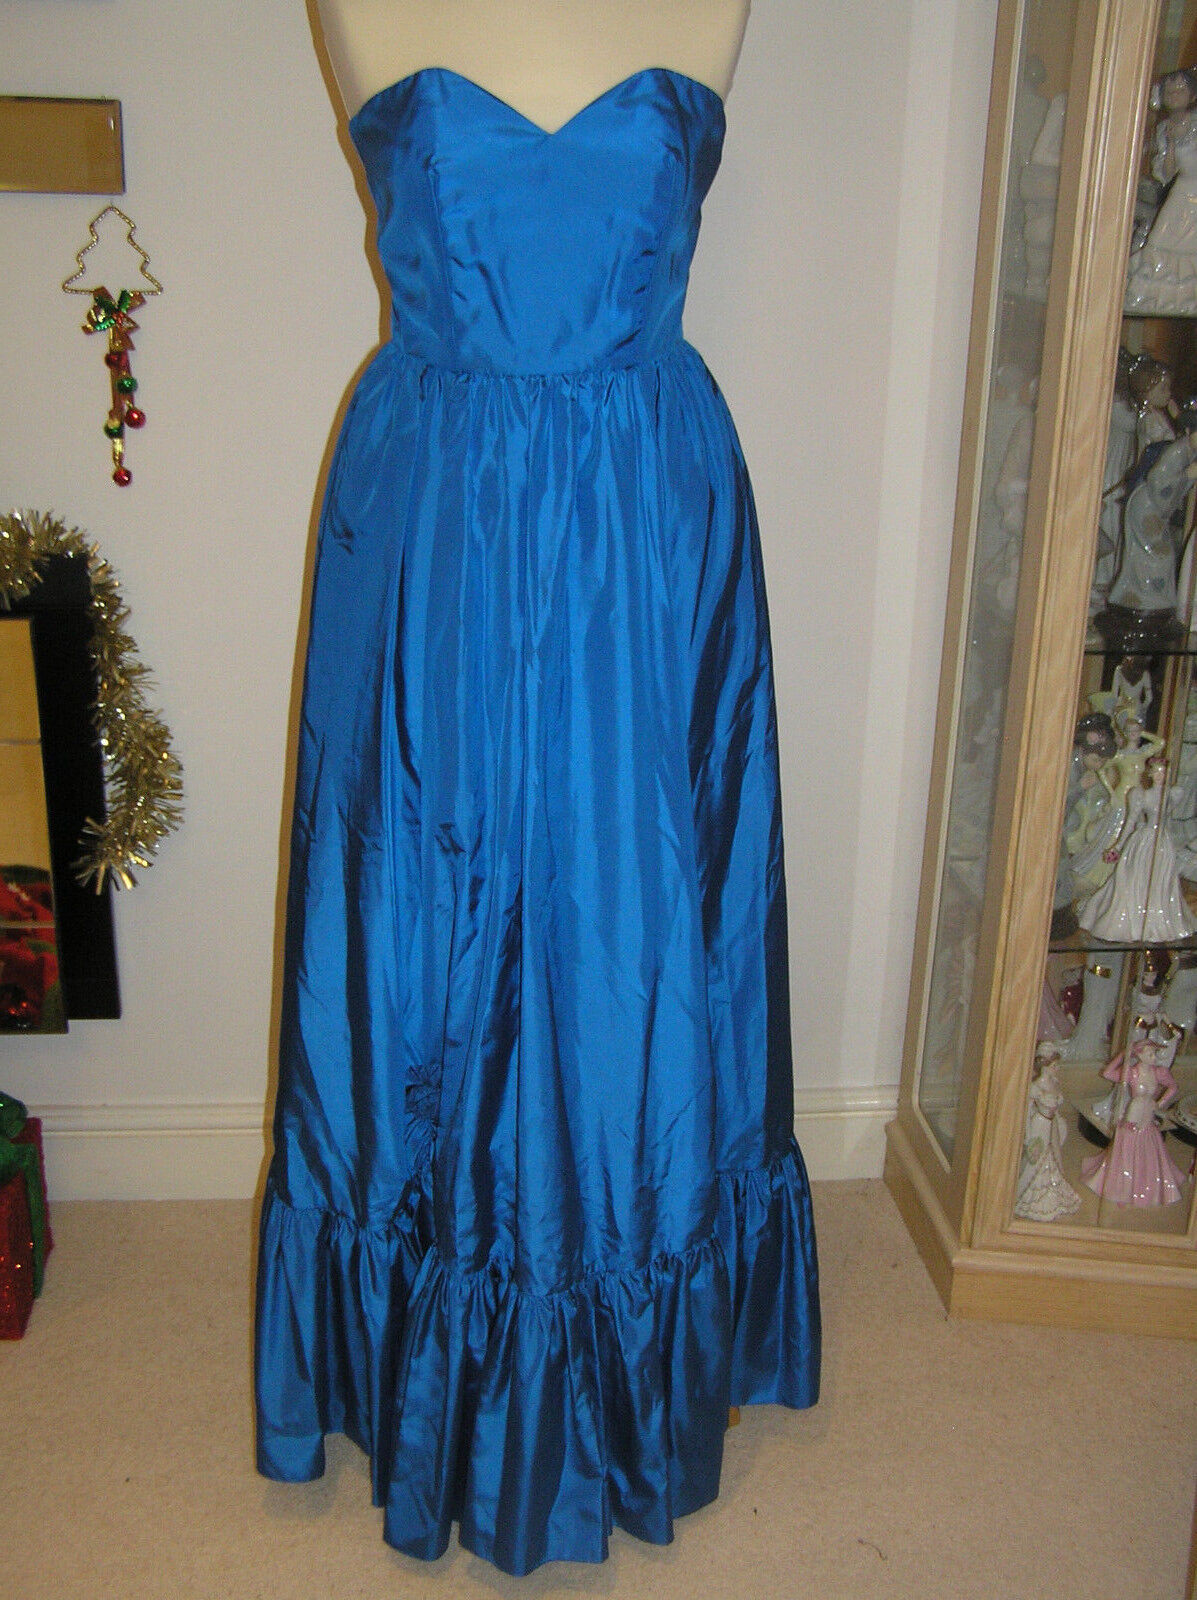 STUNNING EVENING DRESS BALL GOWN PETROL blueE MAXI LENGTH JOHN CHARLES SIZE 10